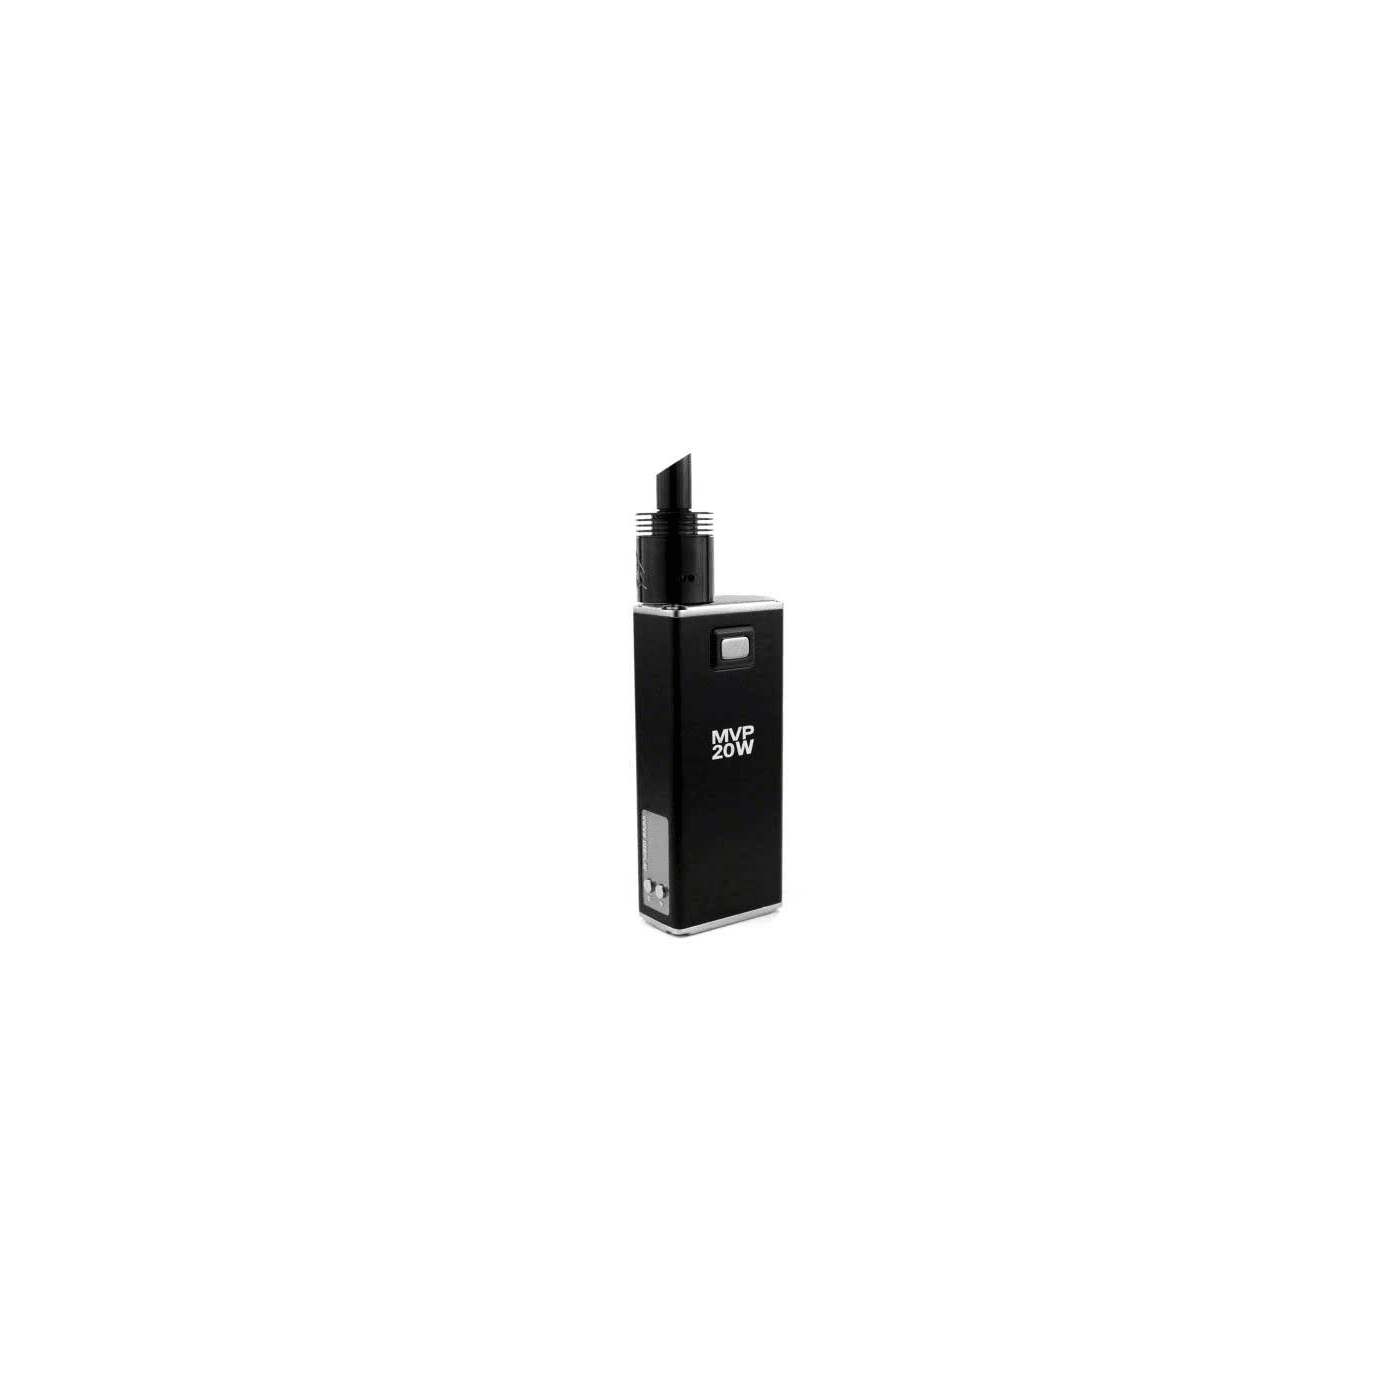 Innokin iTaste MVP 20W Black with RDA Side